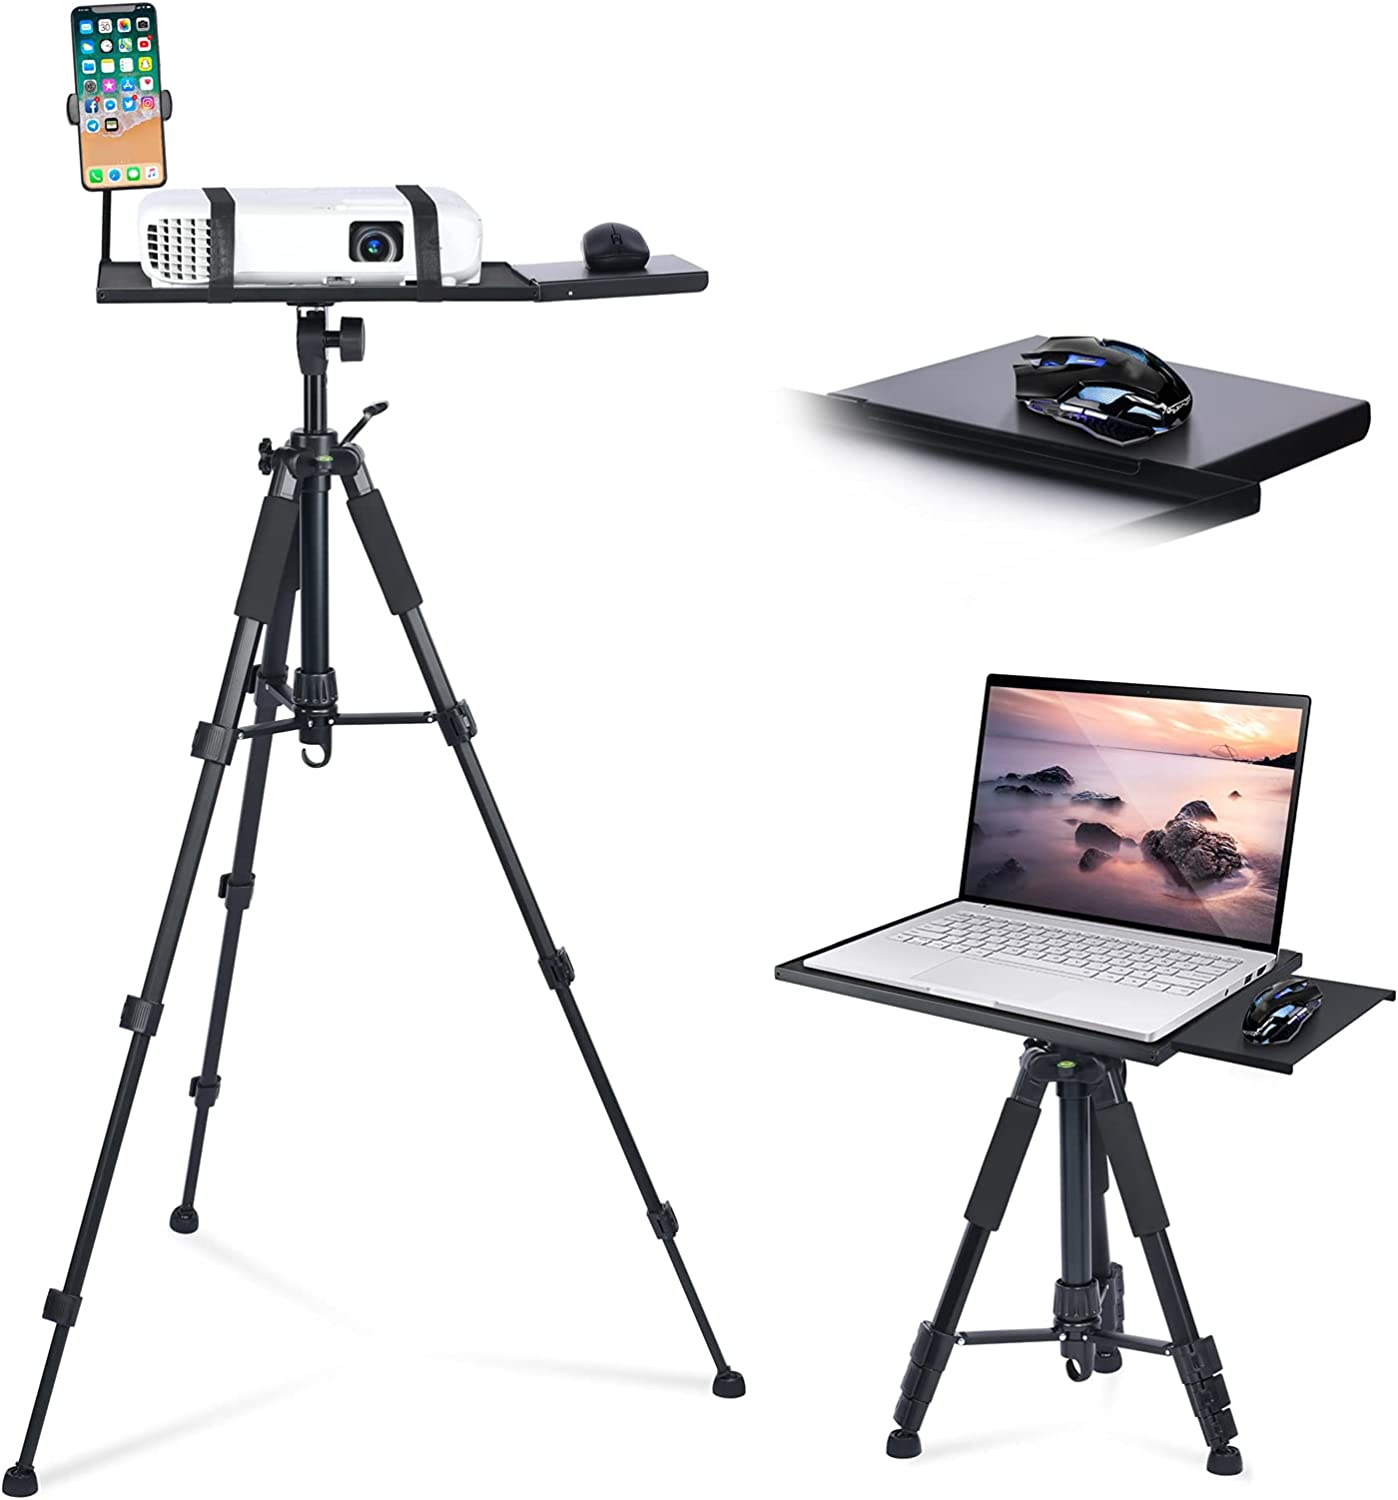 Klvied Universal Projector Tripod Stand - Laptop Tripod Stand with Removable Mouse Tray and Gooseneck Phone Holder, Laptop Floor Stand Adjustable 17.6 to 51.4 Inch, Projector Stand for Stage, Studio